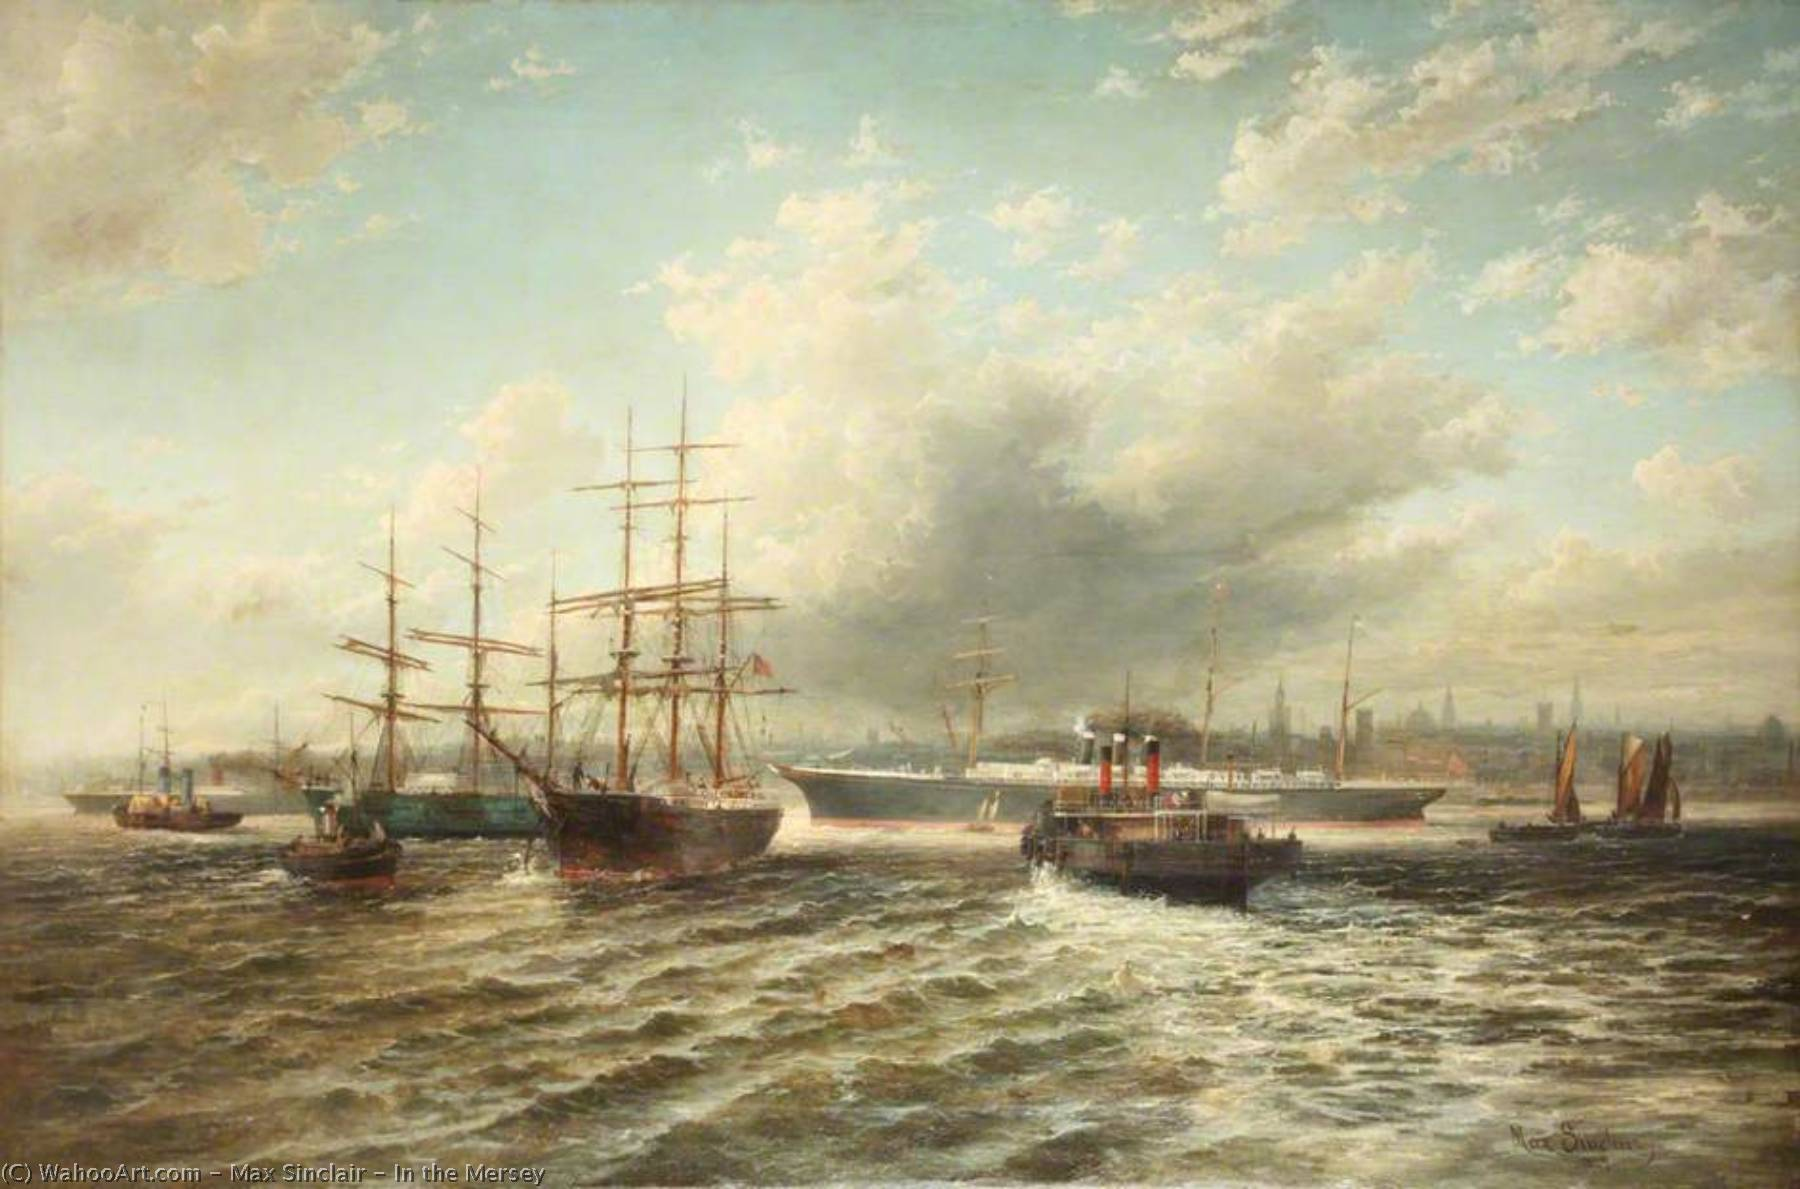 In the Mersey, 1889 by Max Sinclair | WahooArt.com